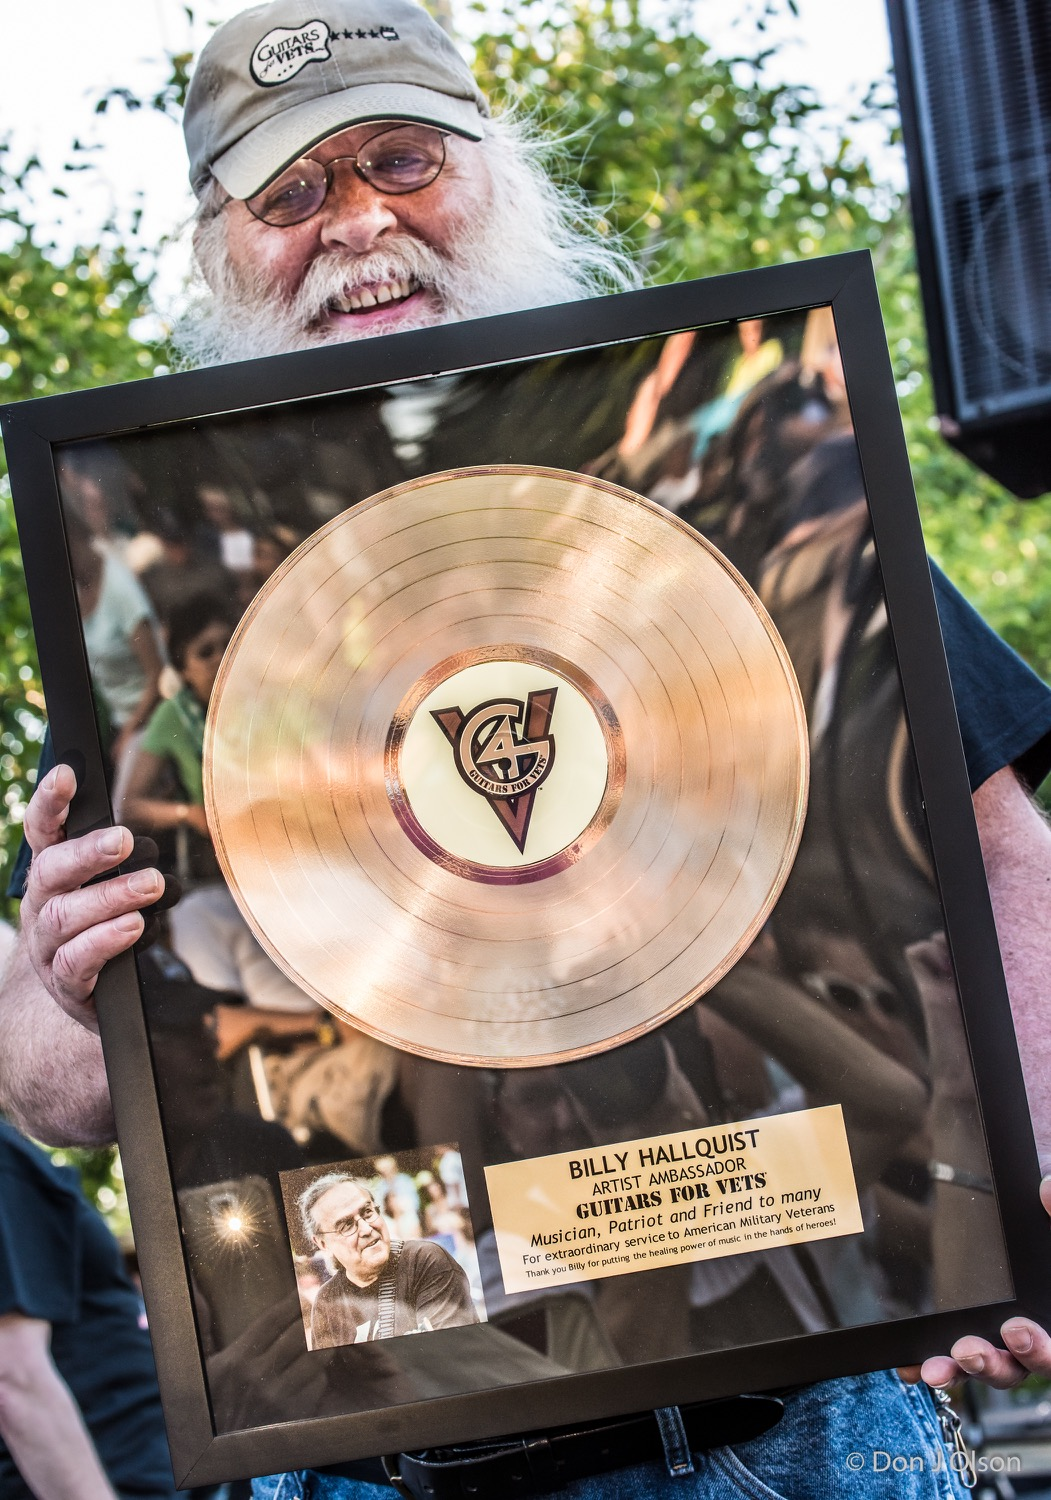 Mike DesLauriers / BILLY HALLQUIST - ARTIST AMBASSADOR - GUITARS FOR VETS - Gold Record Award / The Veterans' Memorial Wolfe Park Amphitheater / St. Louis Park, Minnesota / August 1st, 2015